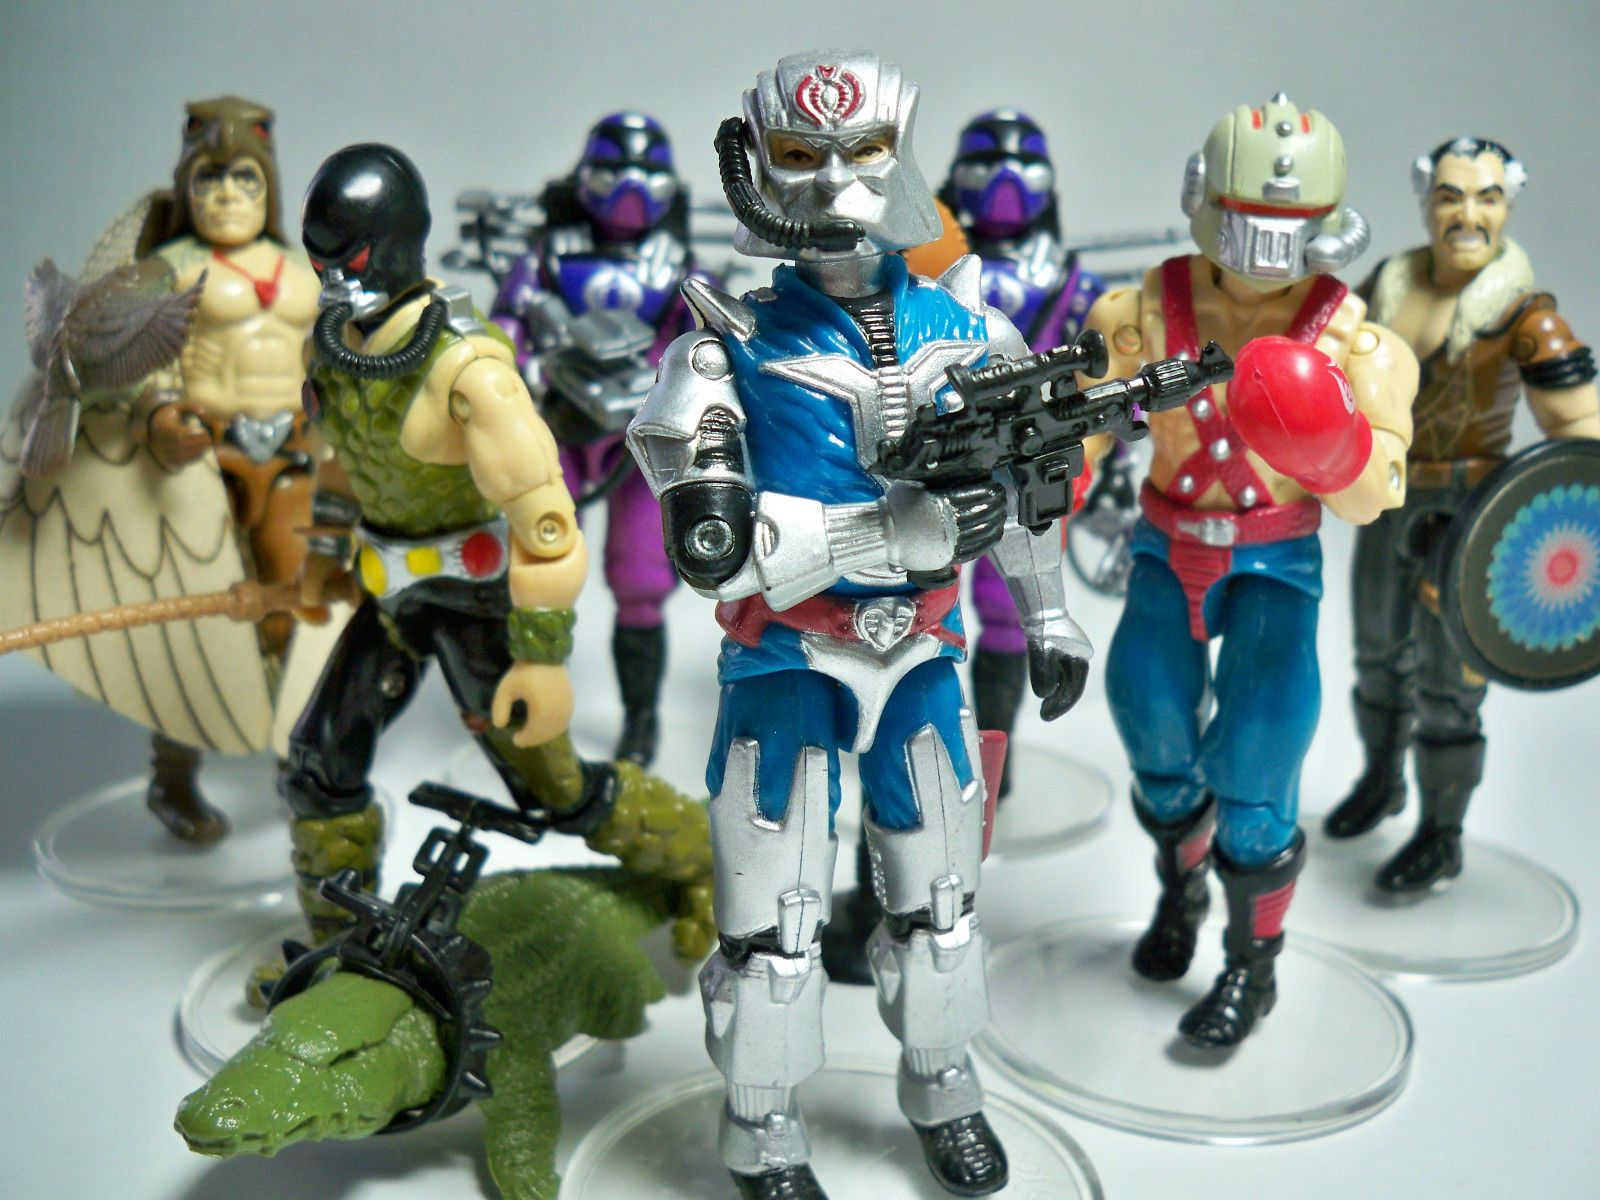 Kids Toys Action Figure: A Set Of Action Figures For The Cobra Operatives From The